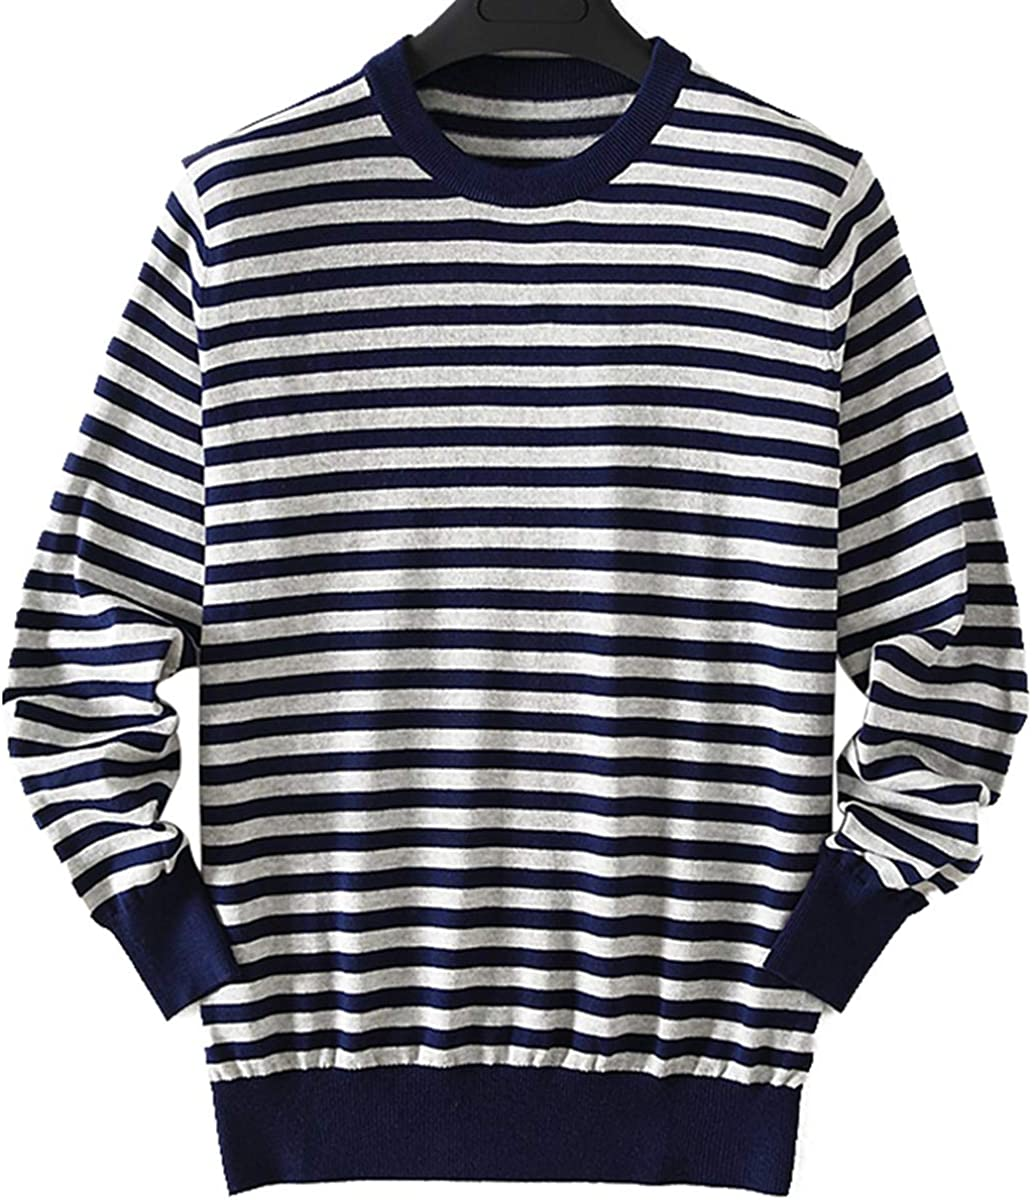 zhili Men's Pullover Sleeve Long Striped Sweater 100% Cotton